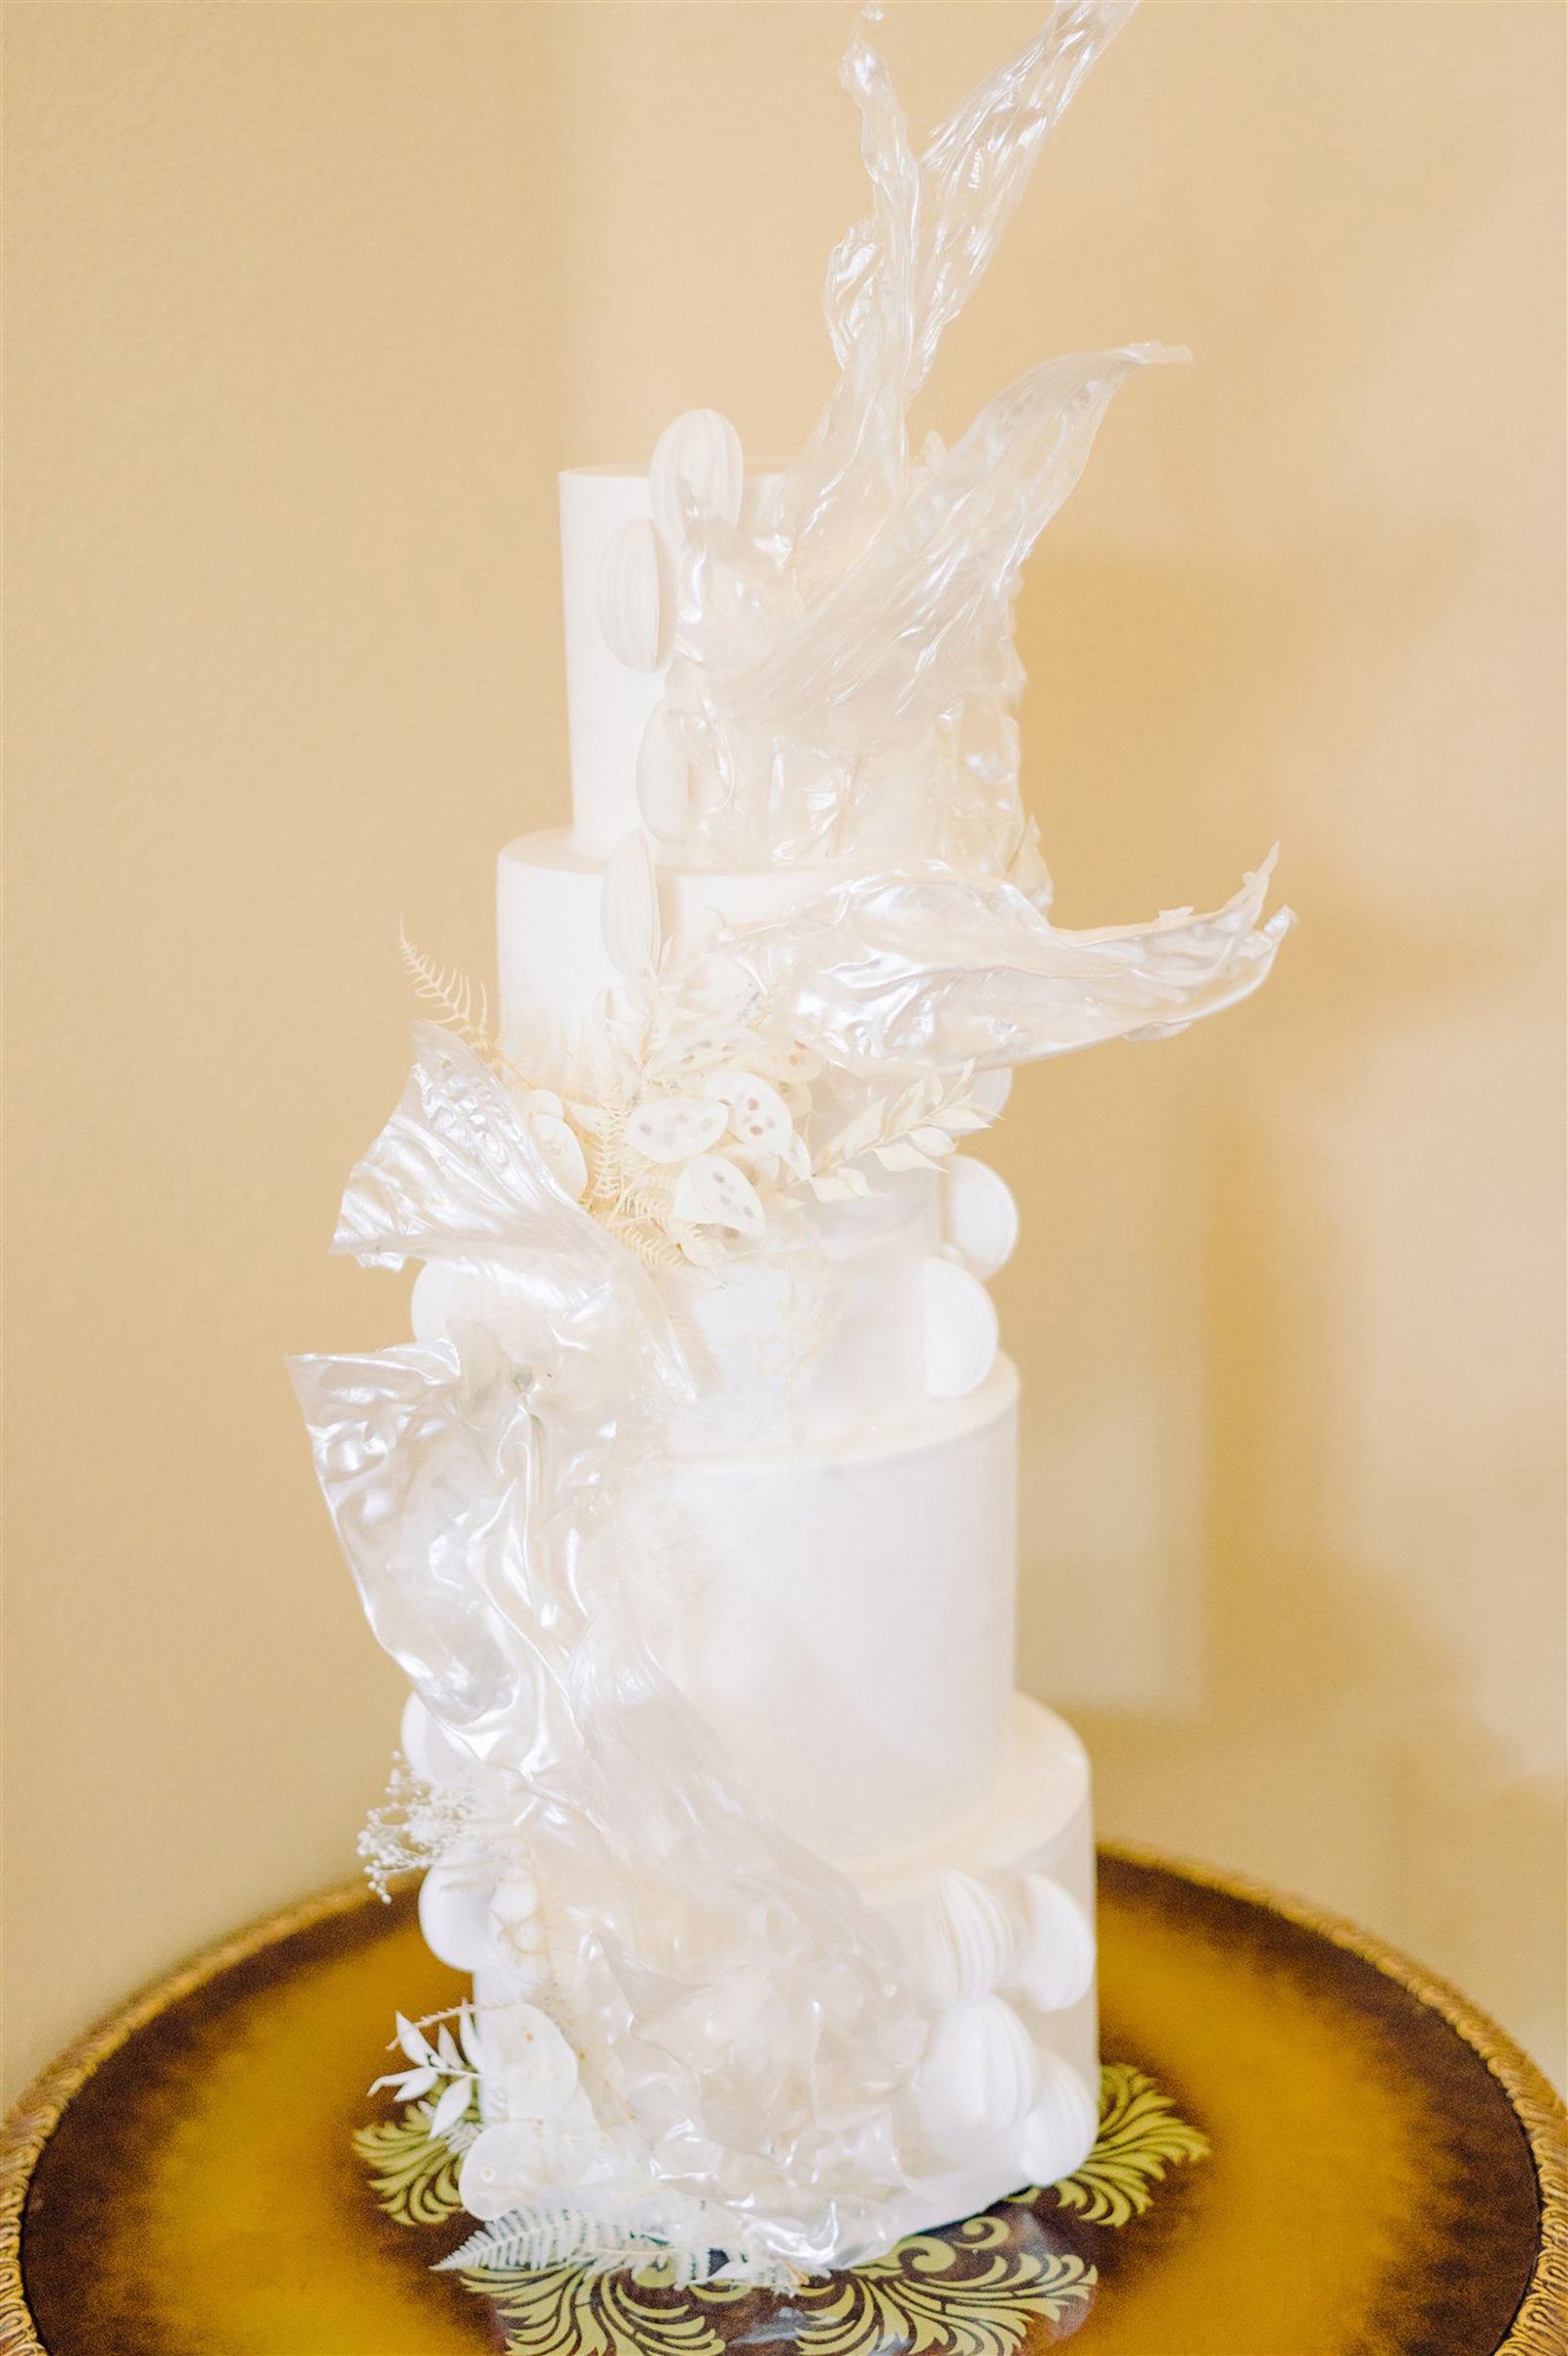 Modern All White Wedding Cake with Sugar Sculpture from Tampa Bay Baker The Artistic Whisk